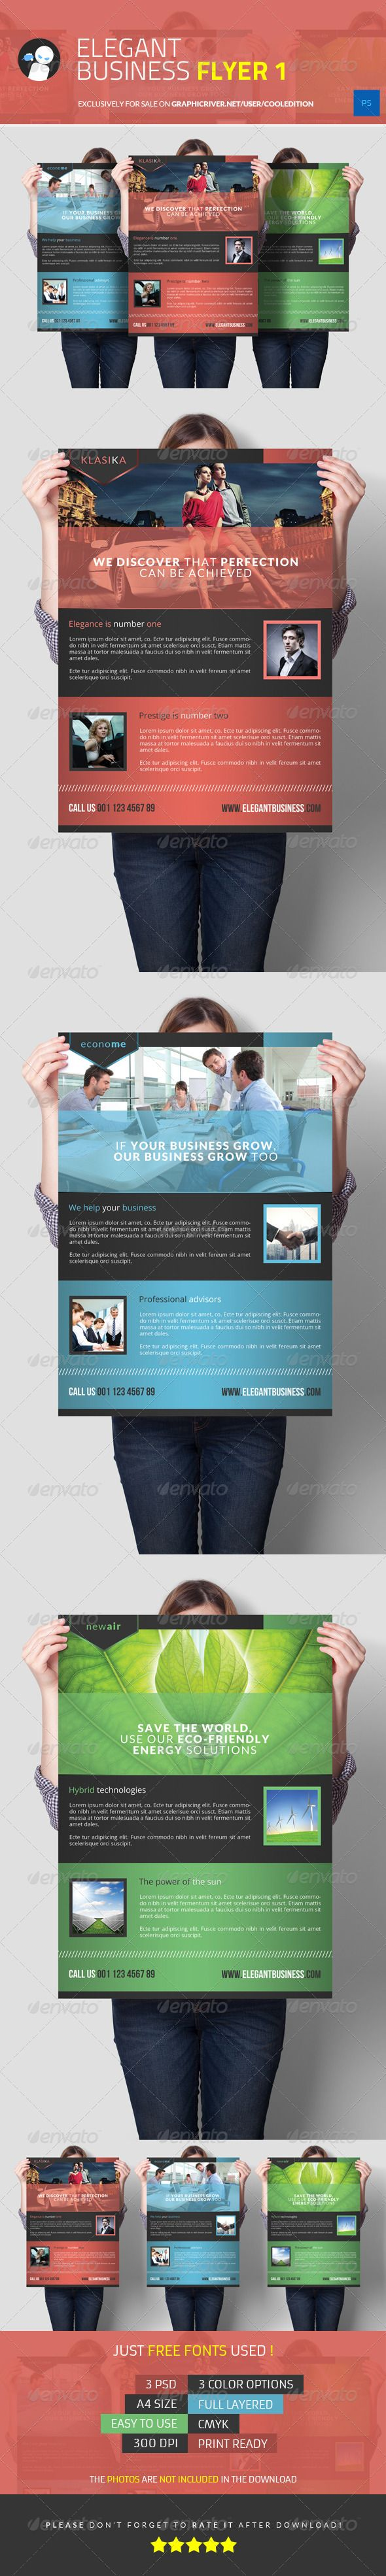 Elegant Business Flyer 1  #GraphicRiver             Elegant Business Flyer 1  Suitable for:   • Products  • Services  • Corporations, Business and professionals     Description:     • 3 .PSD Files  • 1 TEXT file  • 1 JPEG Image with instructions to rate the file     Specifications:     • 3 Color Options  • Photoshop CS4+ Compatible  • A4 Size  • Full Layered  • Easy to Use & Organized Layers  • Print Ready  • 300 DPI  • CMYK     Just free font used:     • Lato  .google /fonts  •…